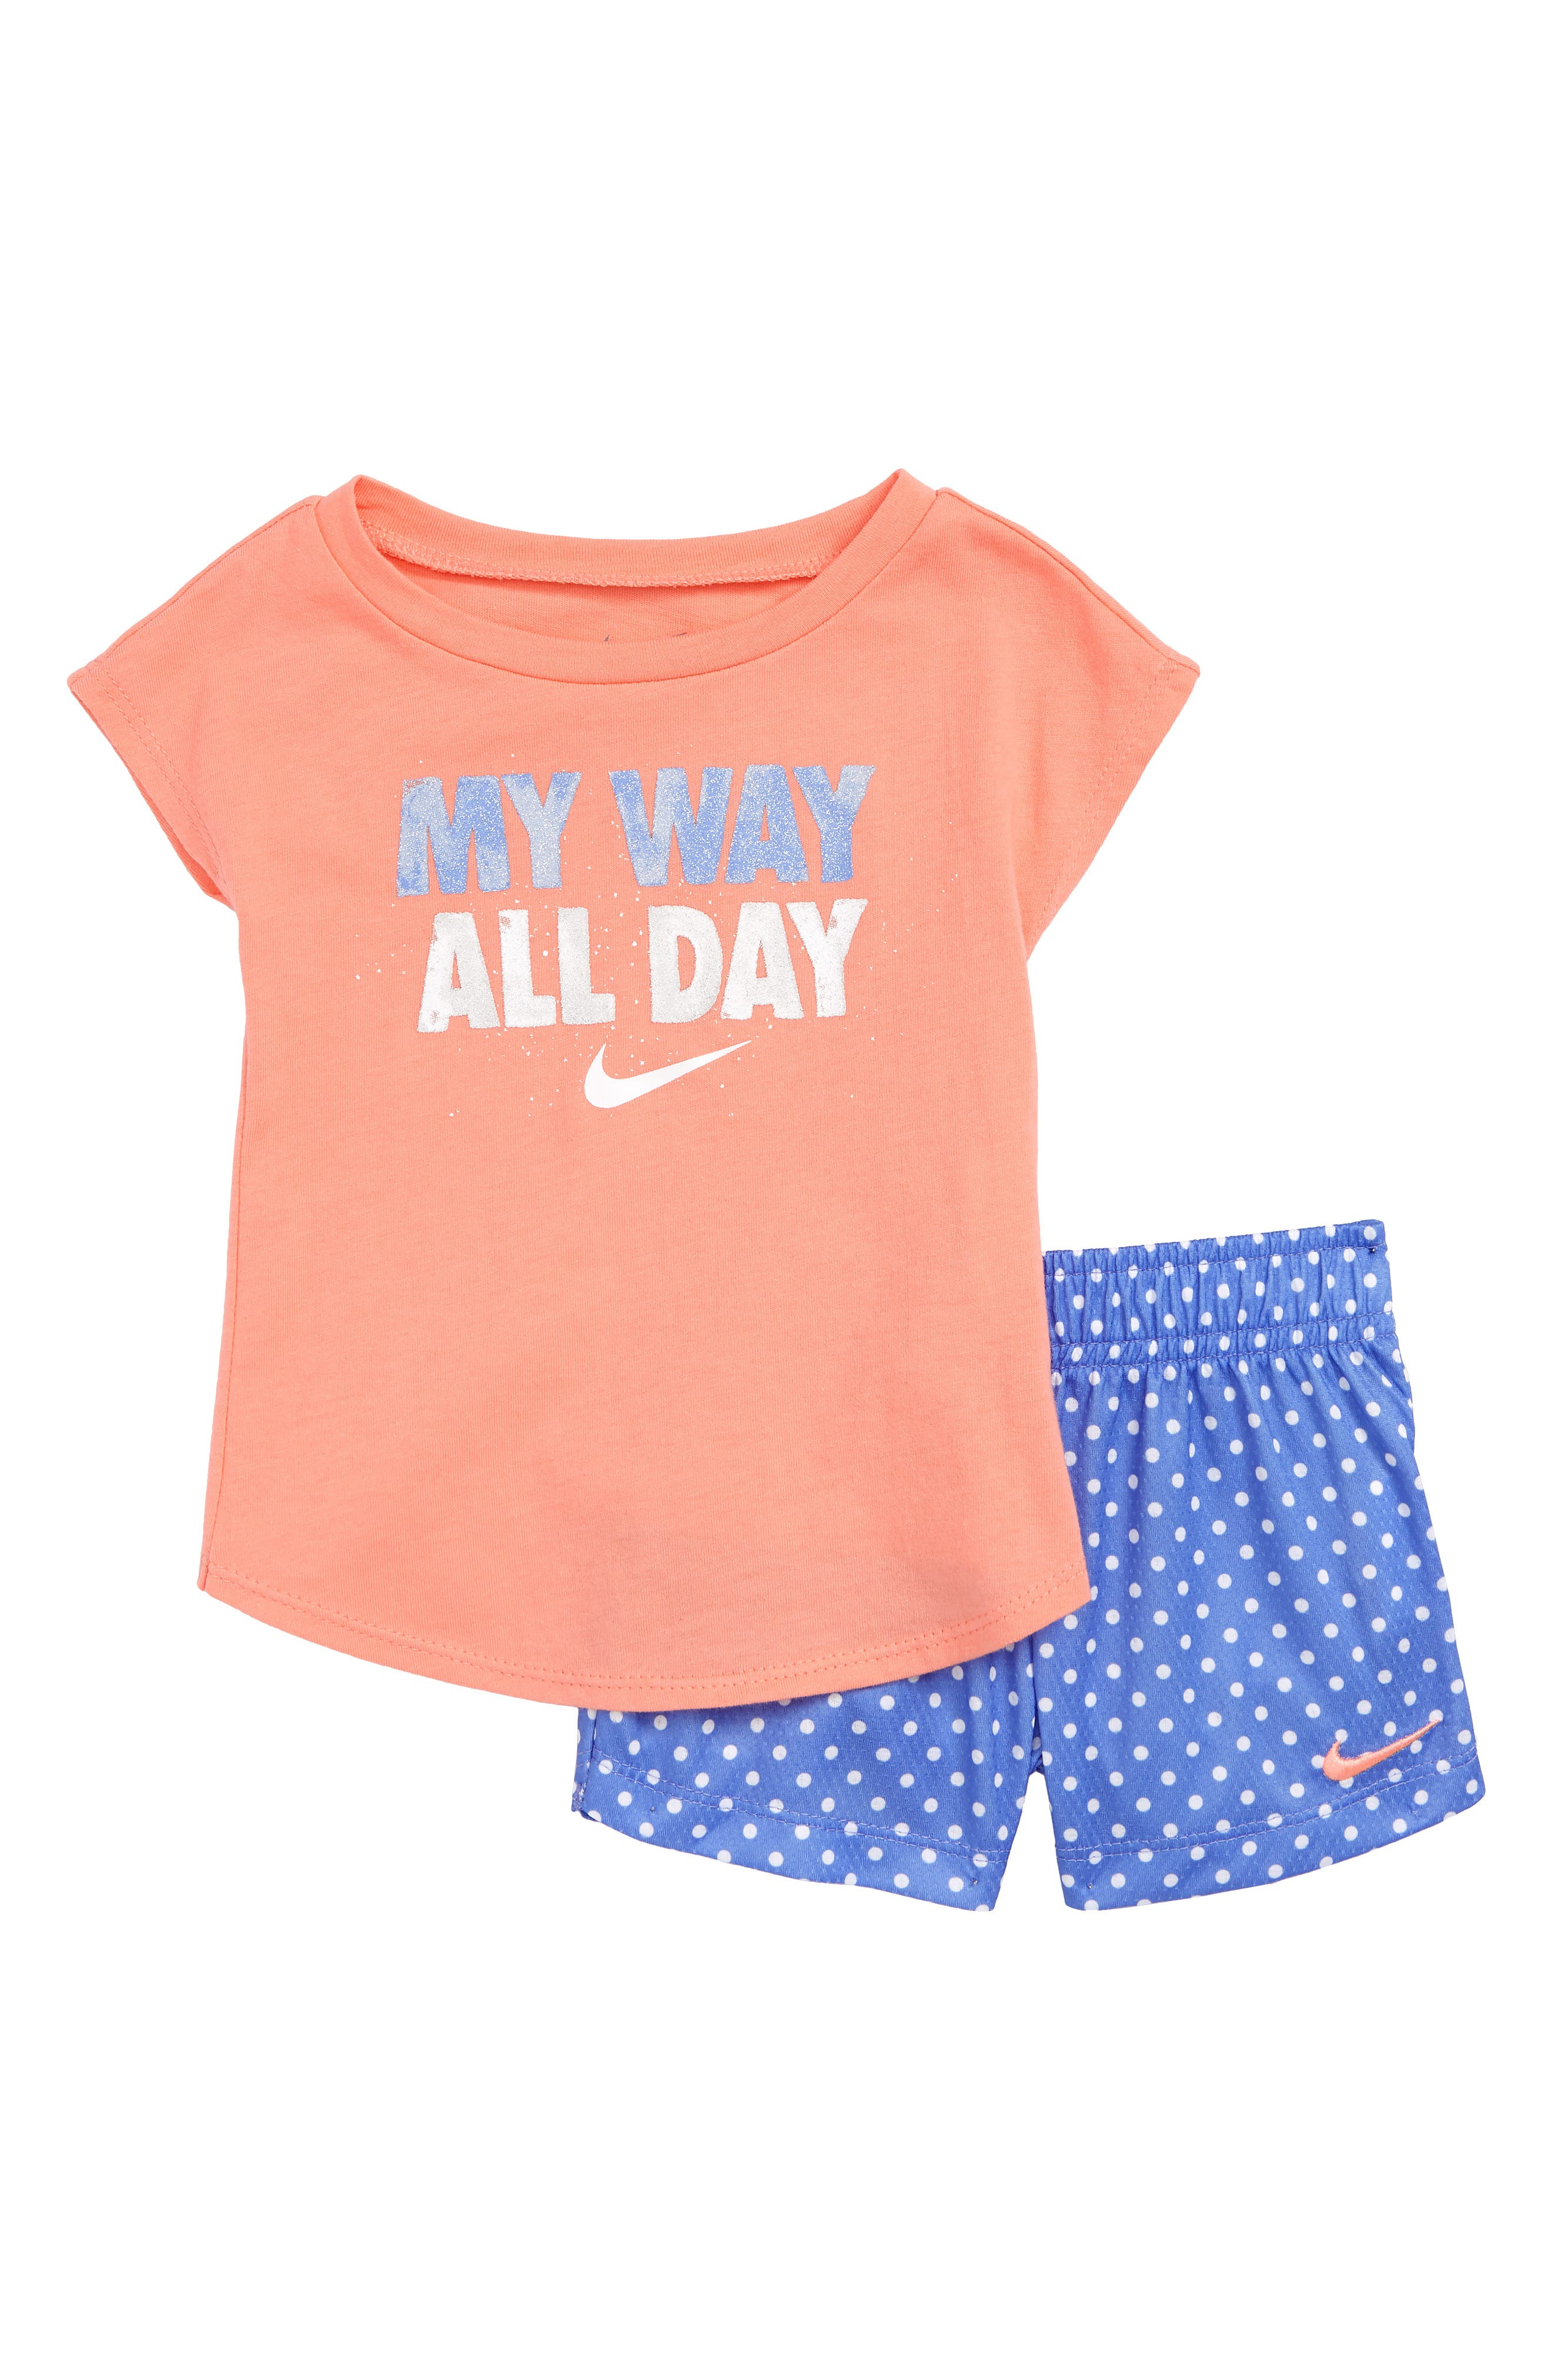 My Way All Day Graphic Tee & Shorts Set,                         Main,                         color, 451